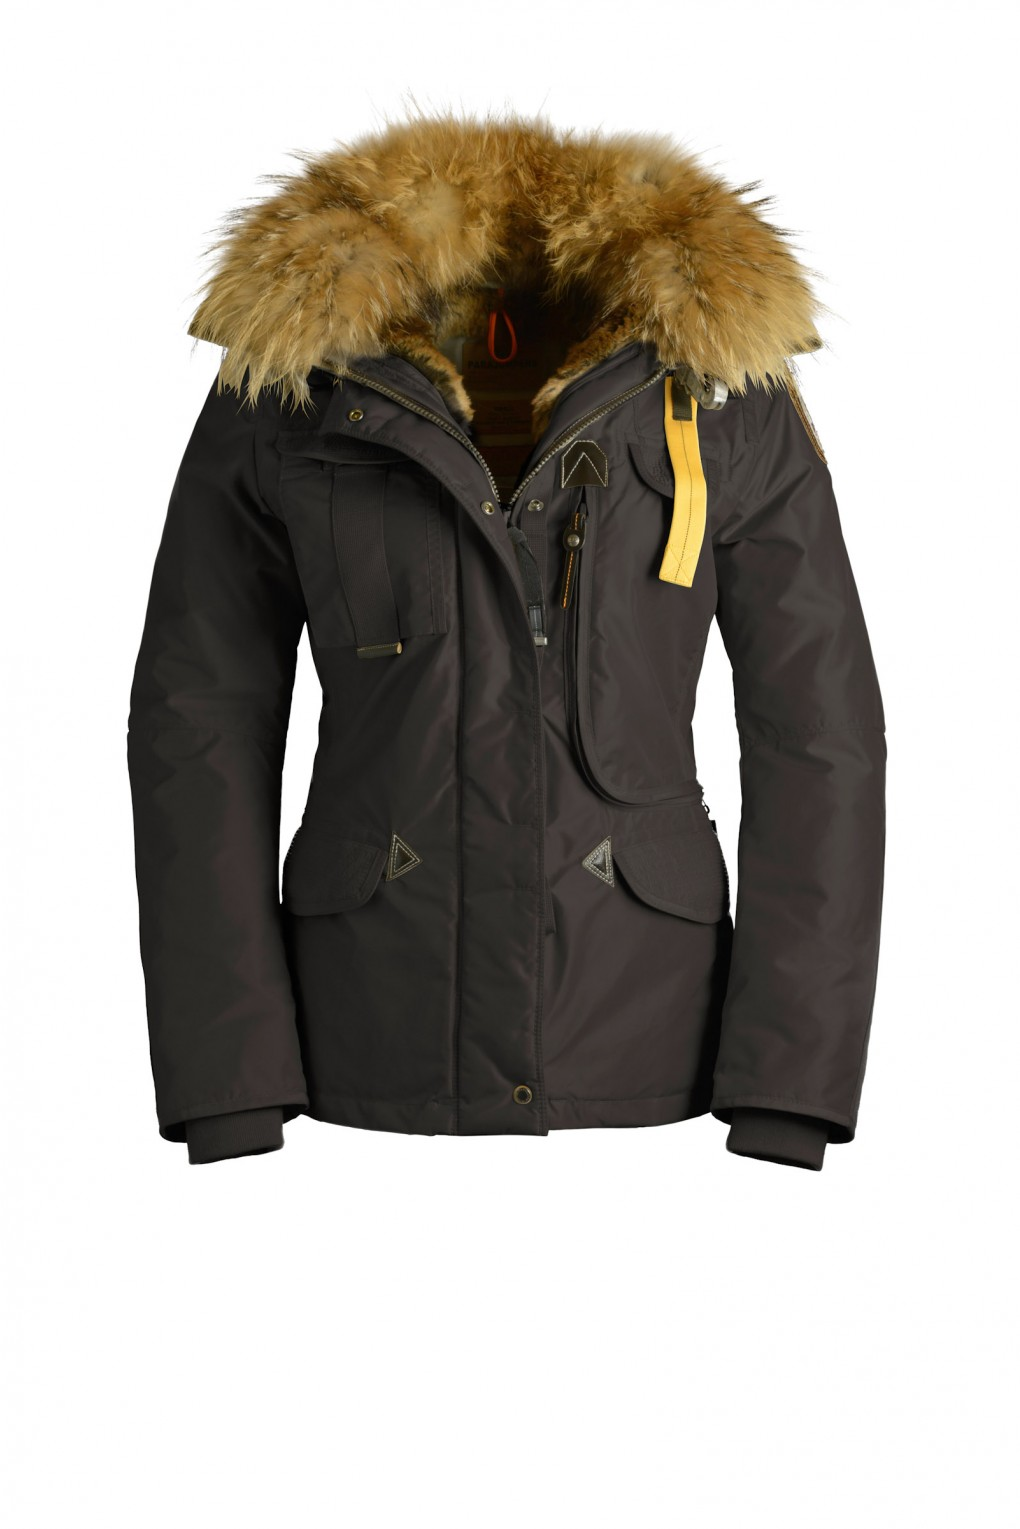 parajumpers DENALI woman outerwear Brown